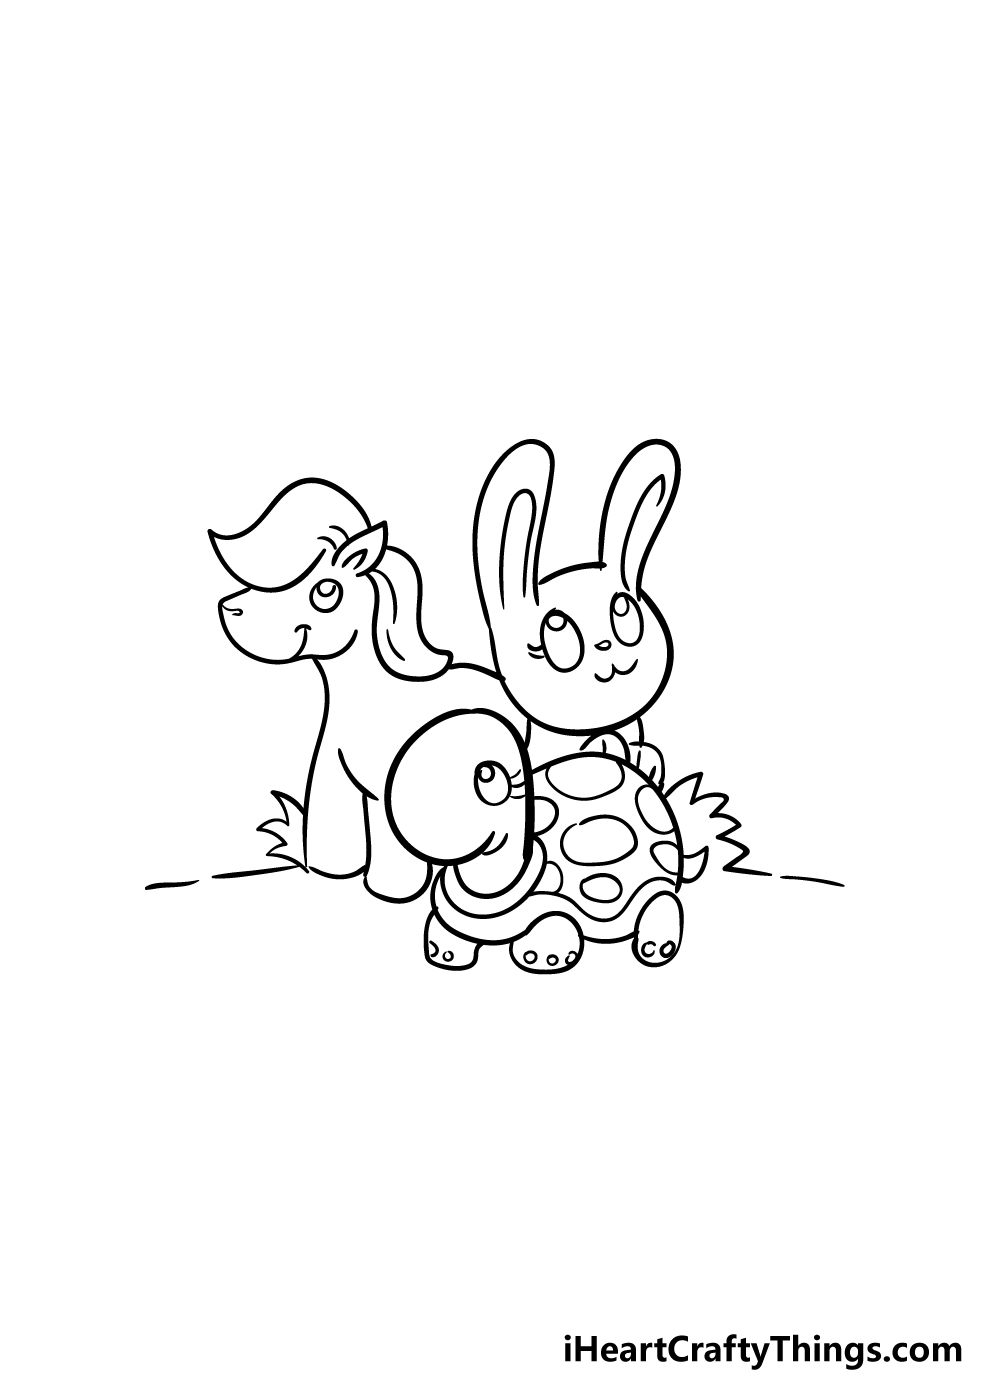 cute animals drawing step 7